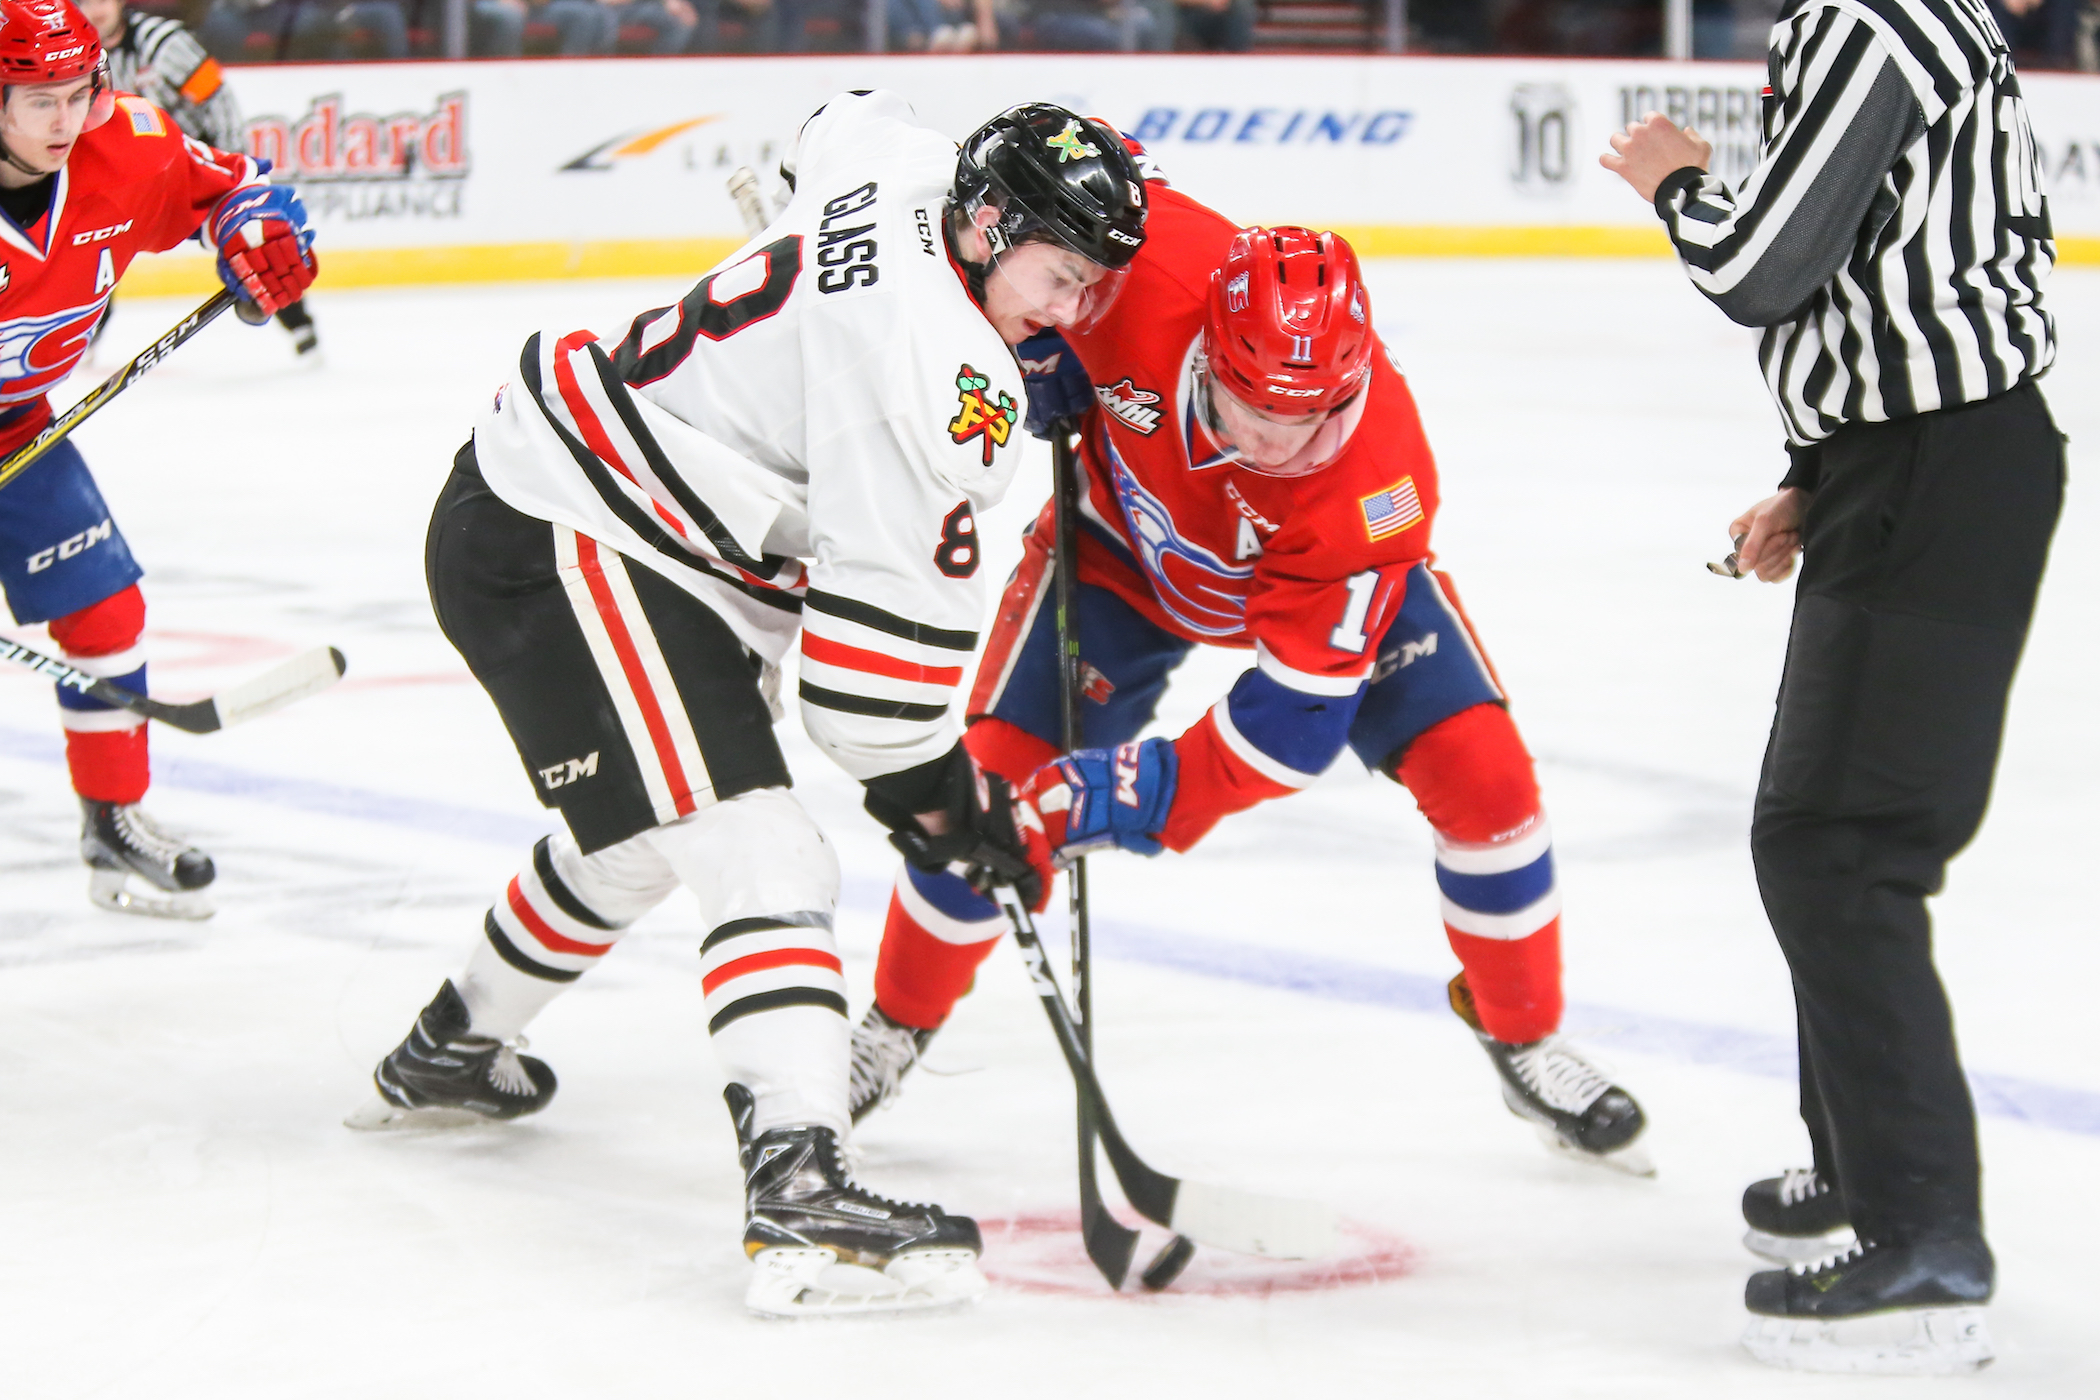 Cody_glass_faceoff